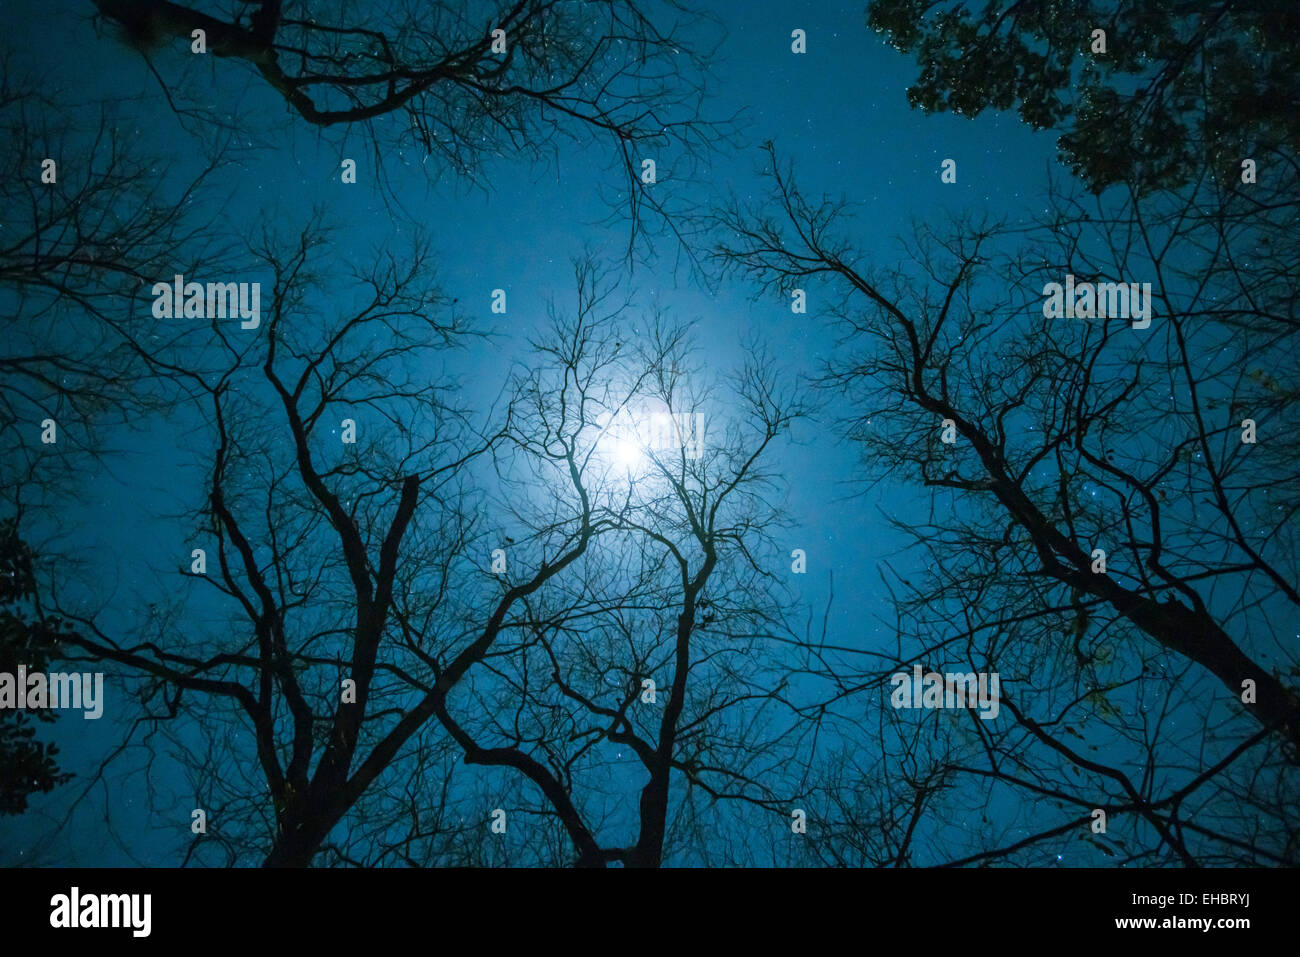 Bare Hickory Trees with moon in winter sky - Stock Image